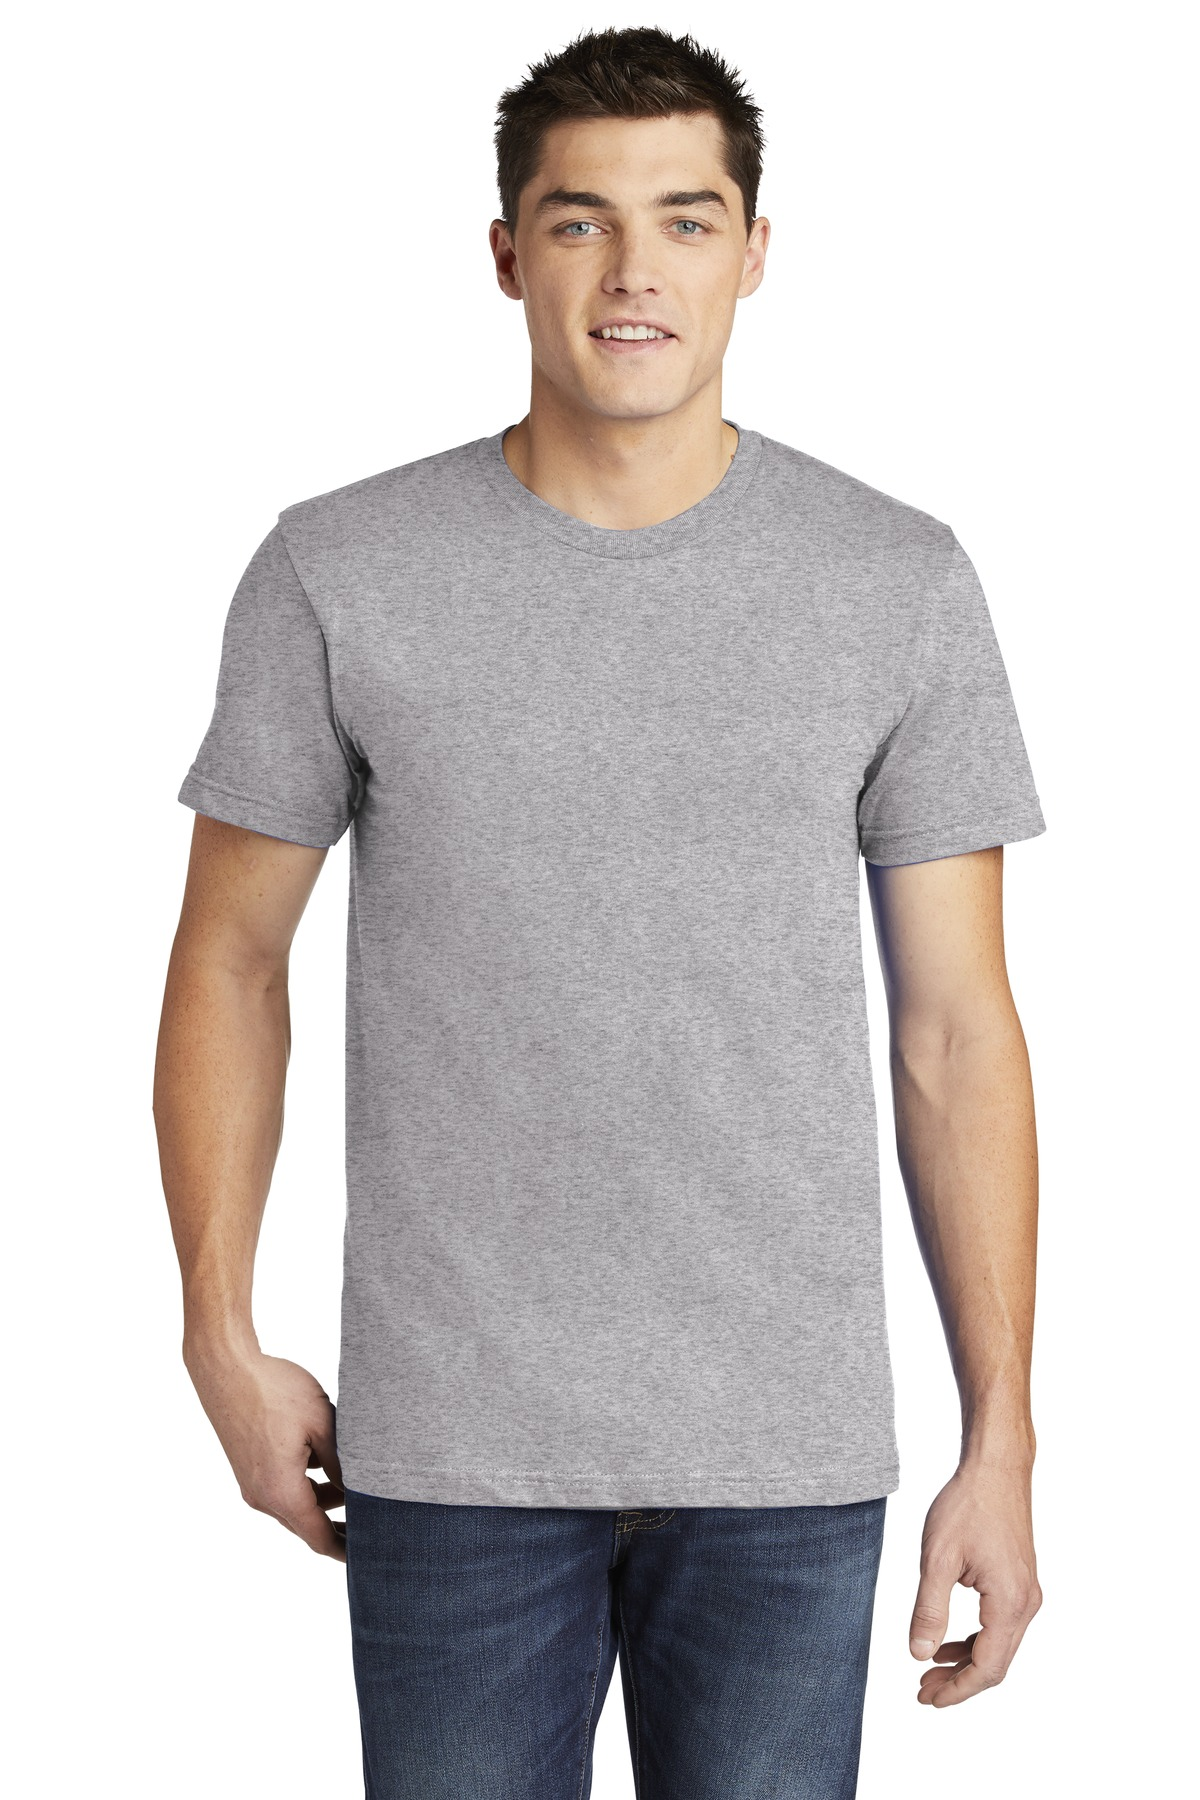 American Apparel  ®  USA Collection Fine Jersey T-Shirt. 2001A - Heather Grey